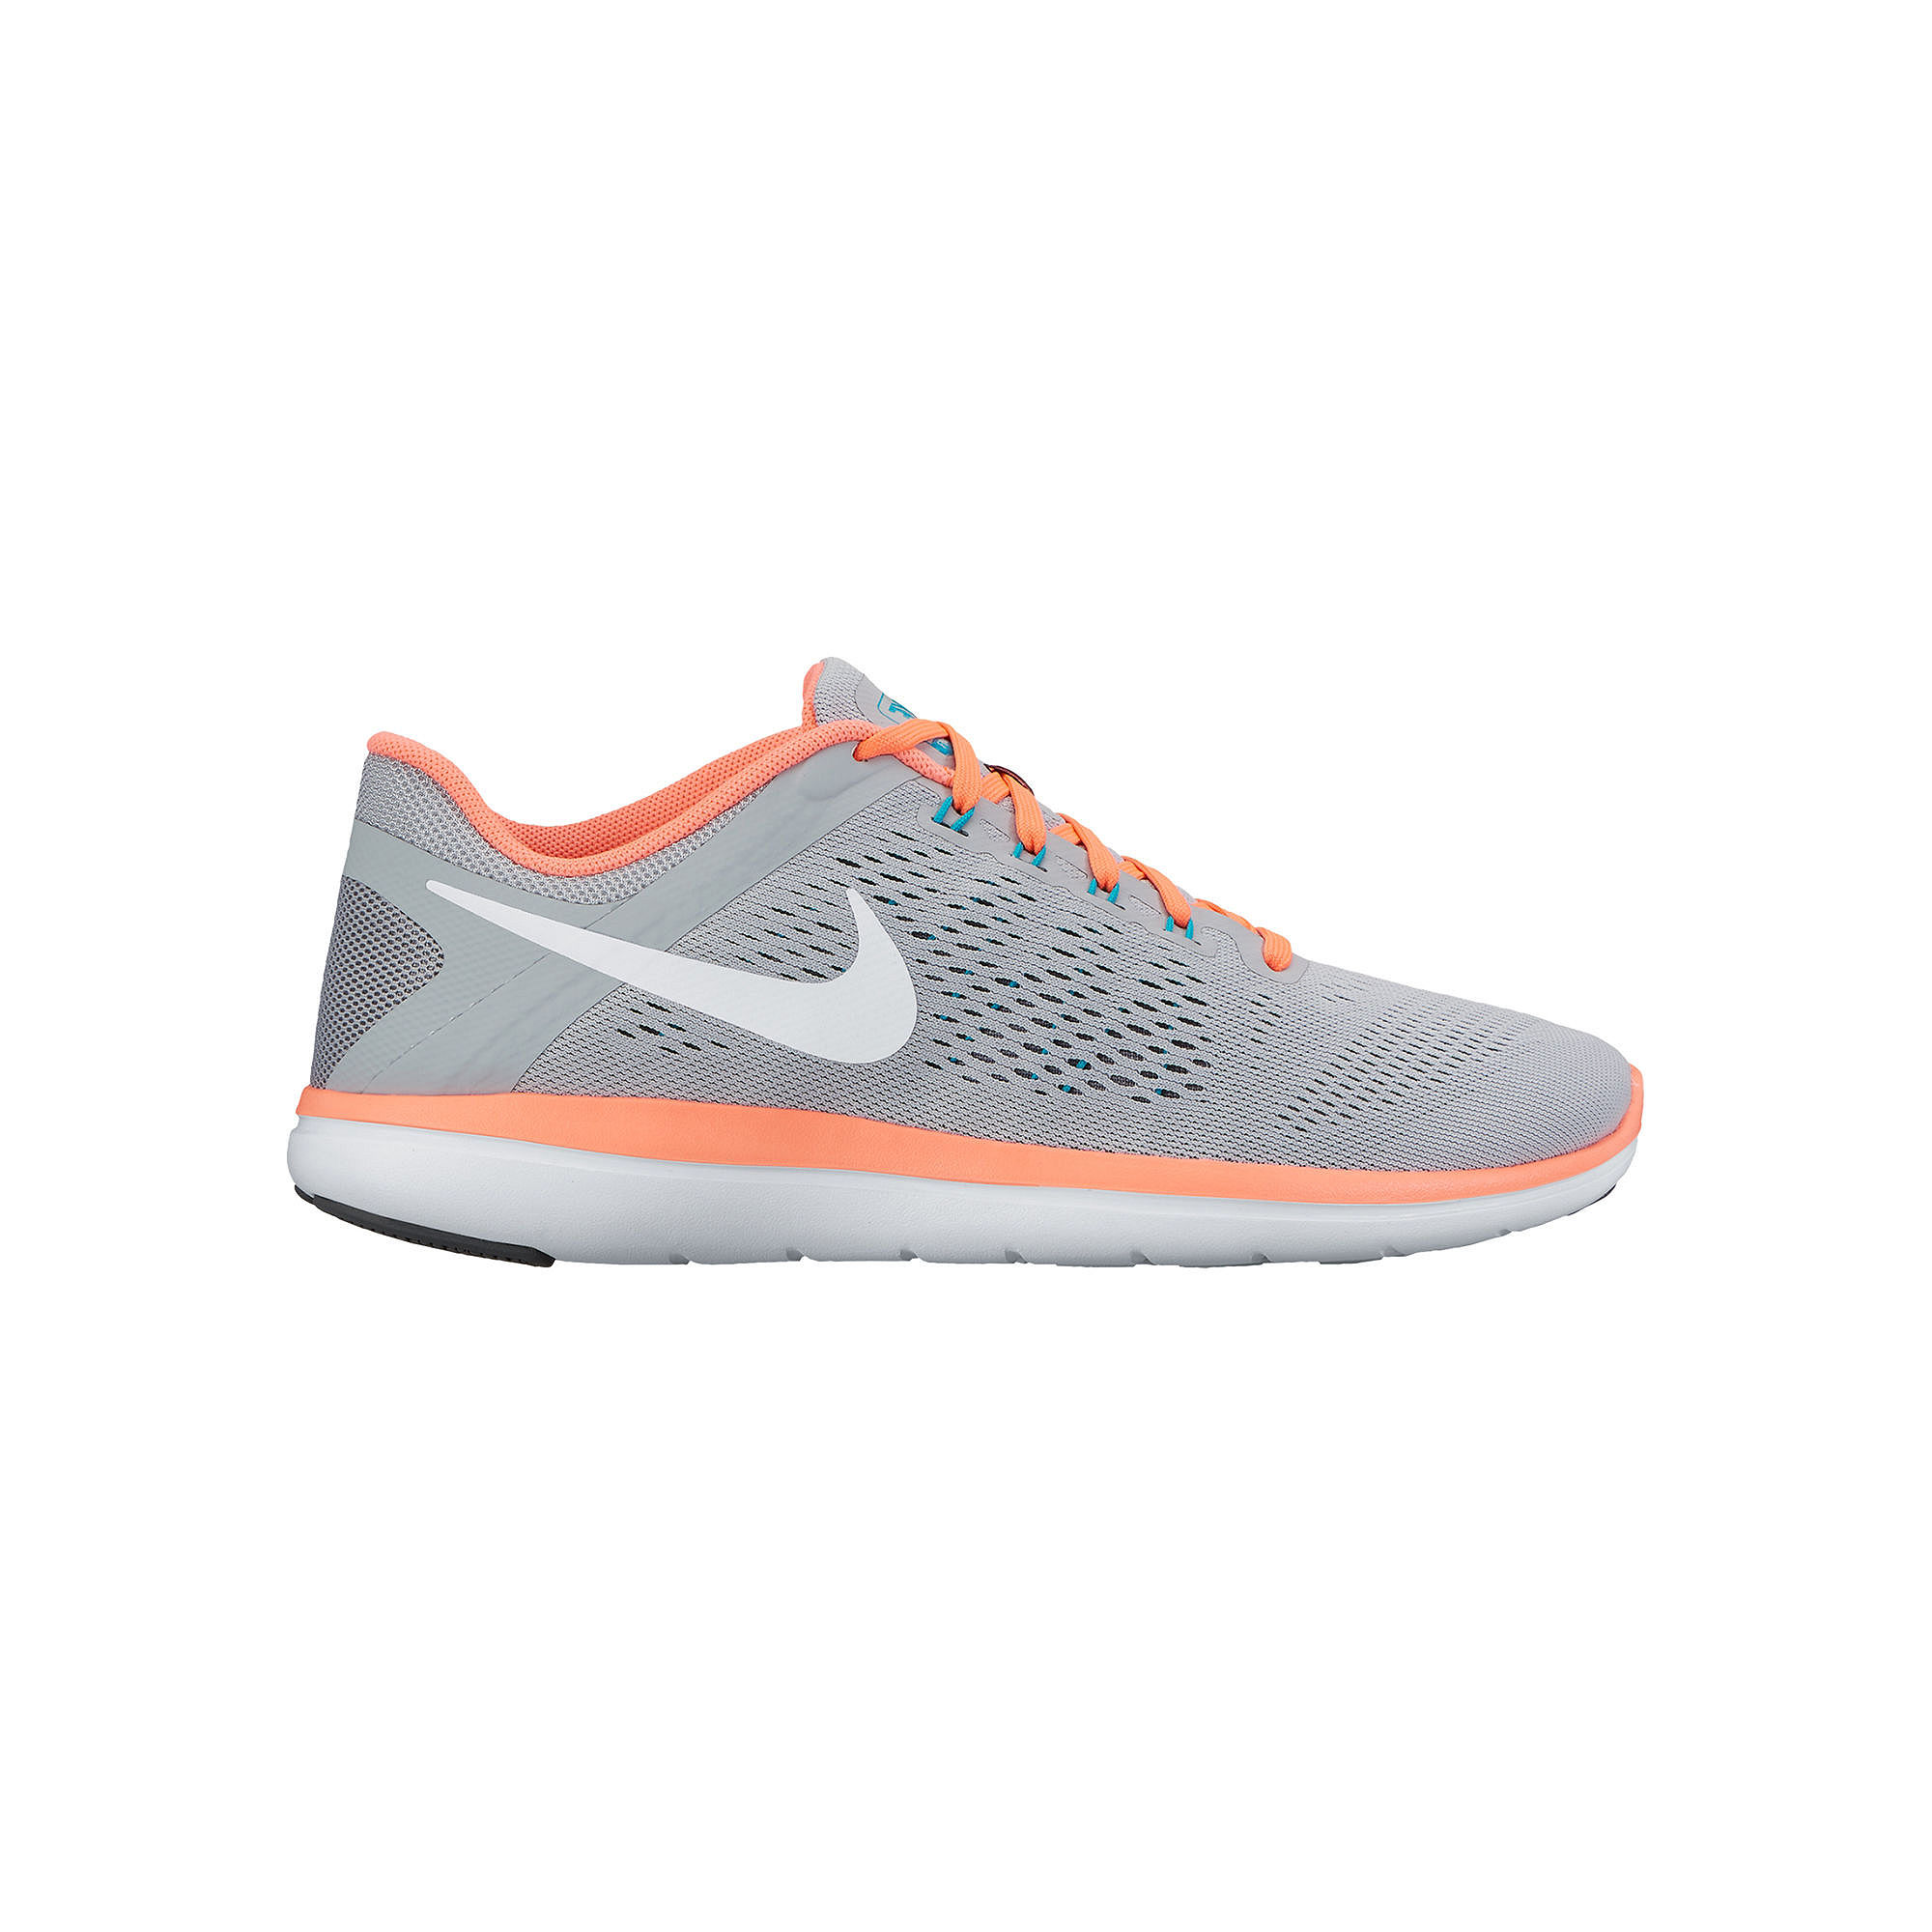 ba04238a47617e ... UPC 886548823727 product image for Nike Womens Flex Run 2016 Running  Shoes